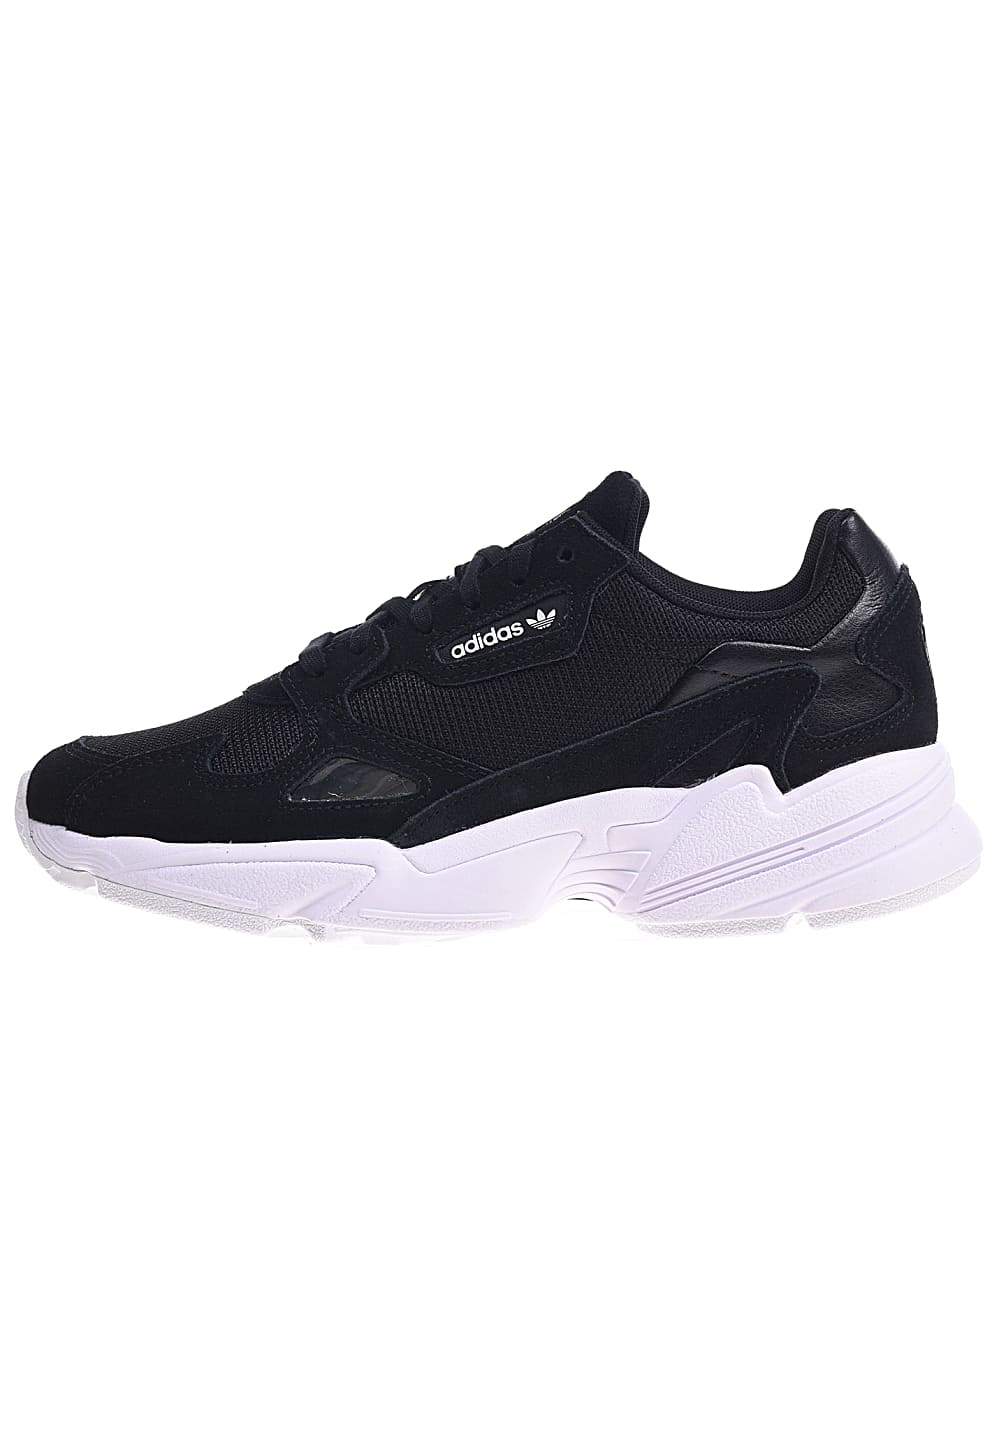 ADIDAS ORIGINALS Falcon Baskets pour Femme Noir Planet